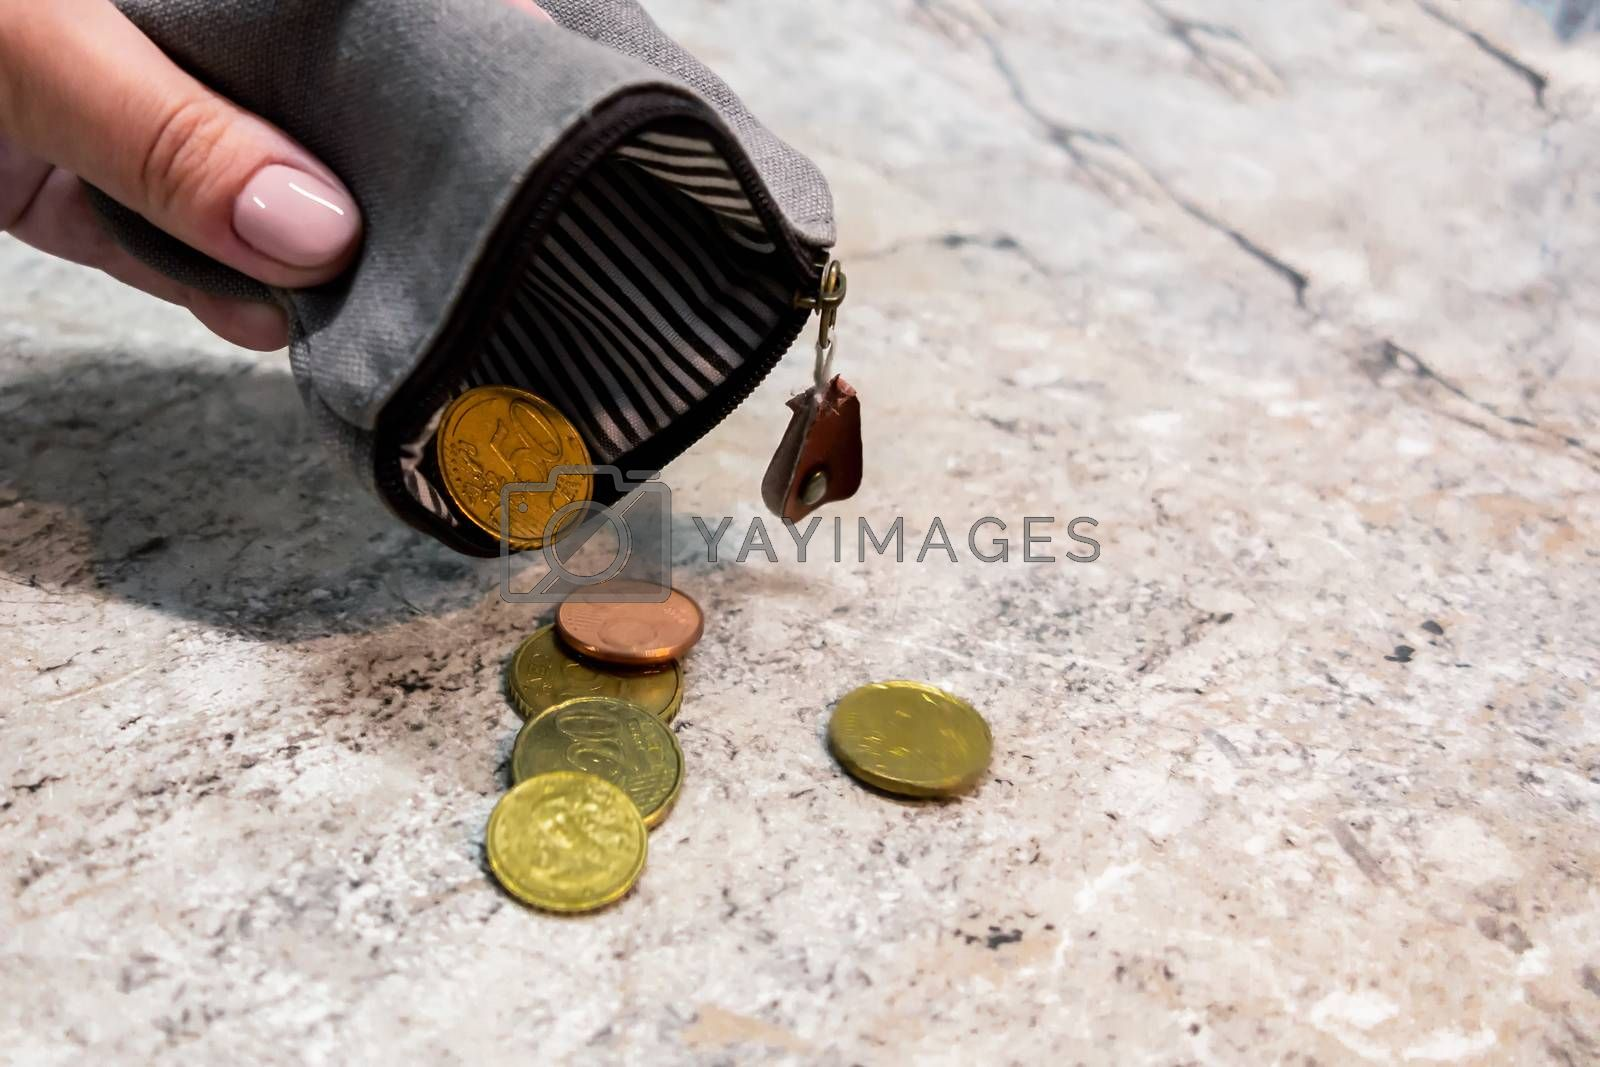 Several coins fall from an empty purse in a woman's hand by galsand